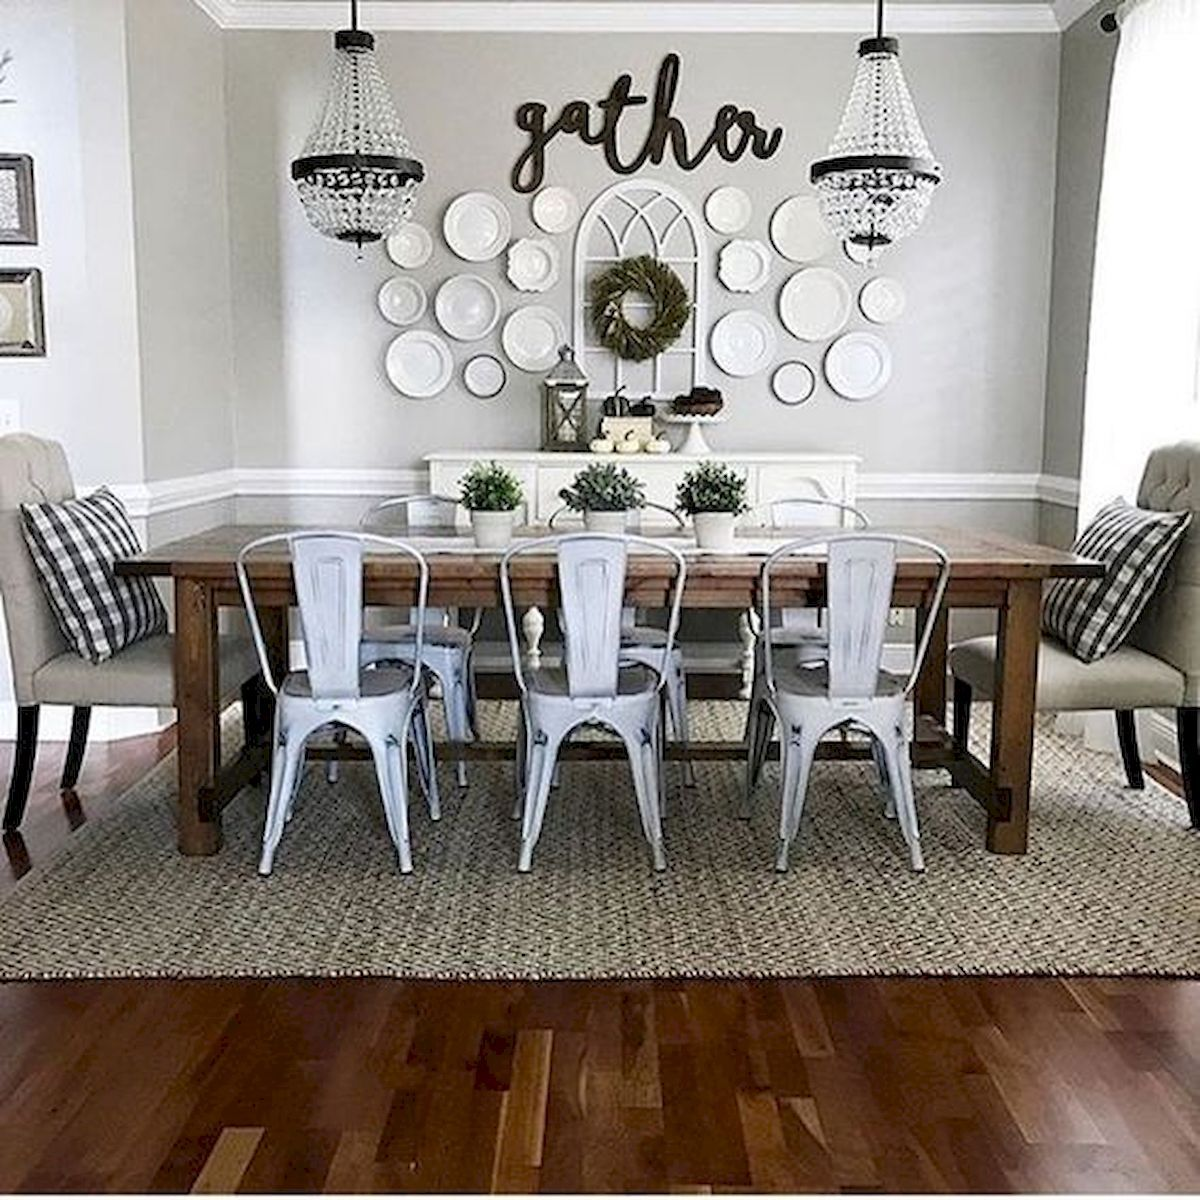 33 Adorable Dining Room Wall Art Ideas And Decor33decor Dining